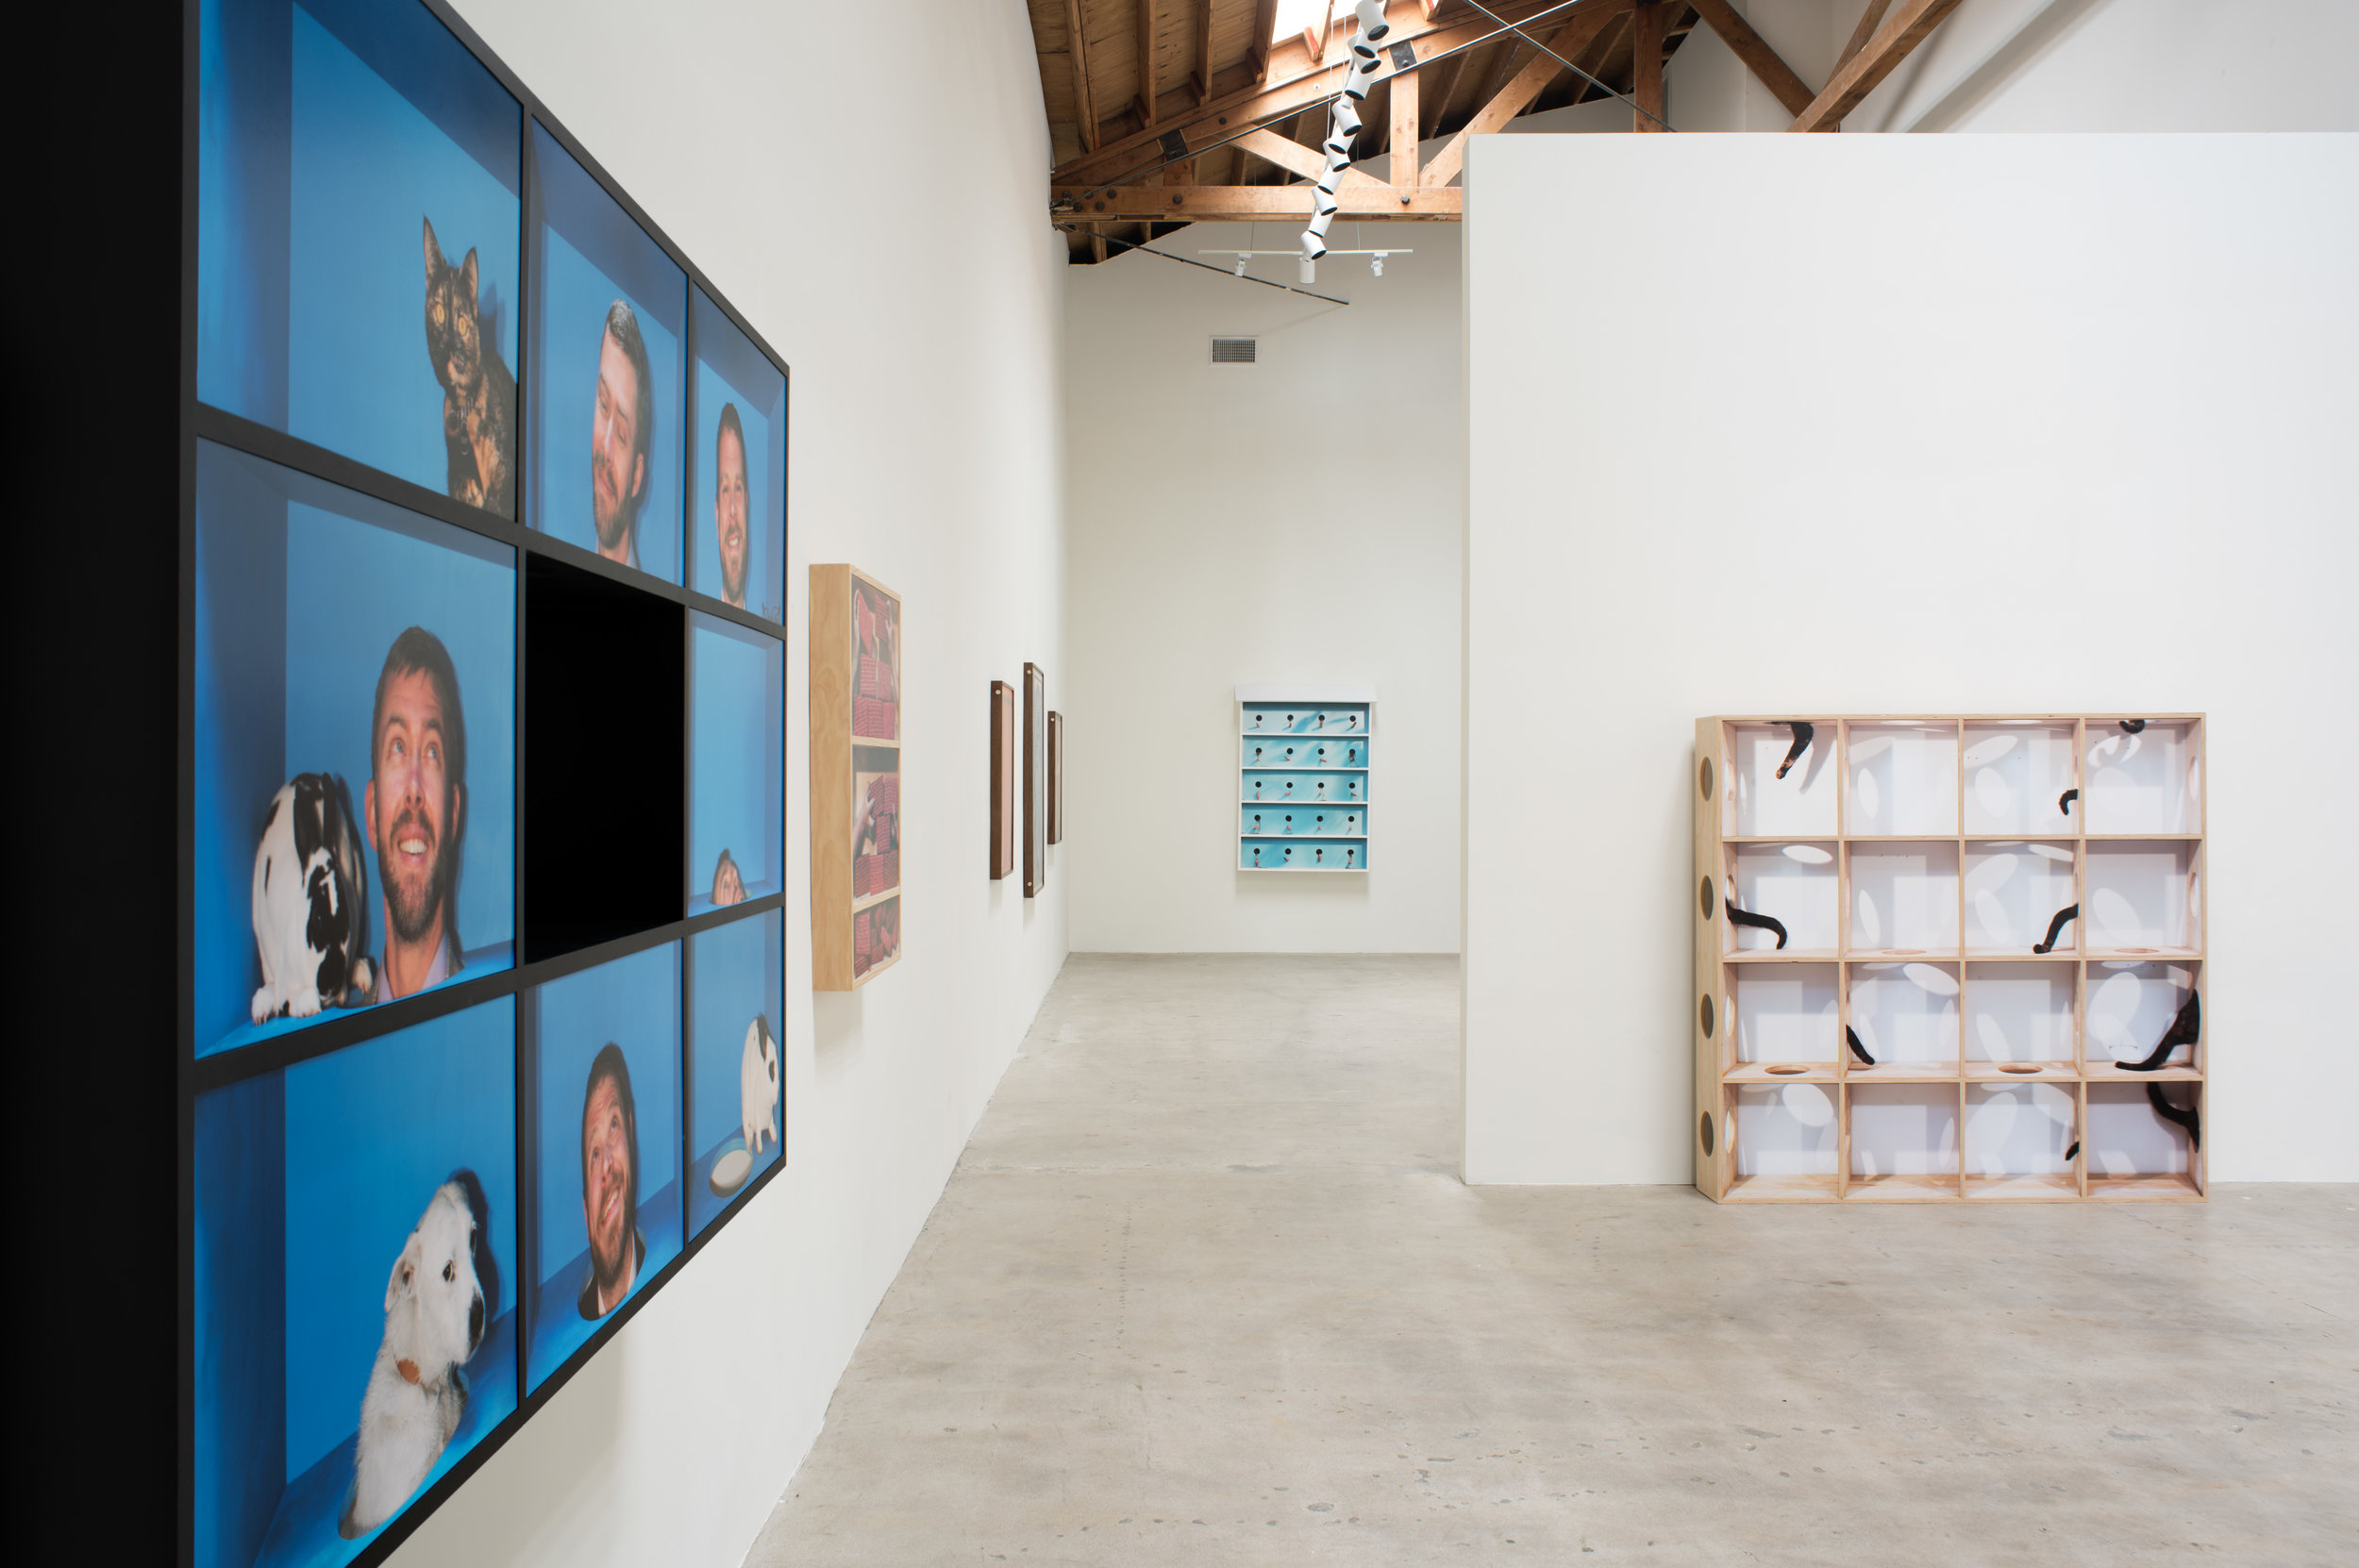 Installation View  Performance Anxiety  May 11 - June 29, 2019 Moskowitz Bayse, Los Angeles   ————